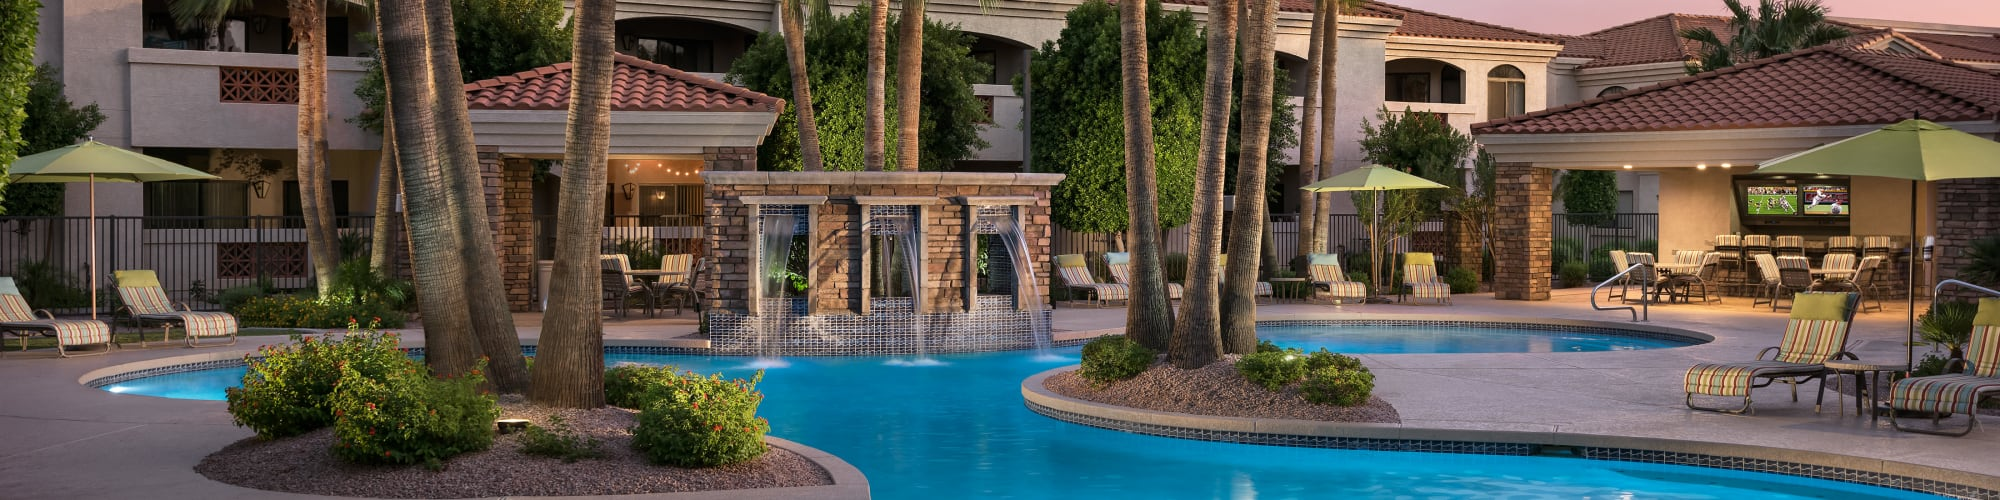 Amenities at San Prado in Glendale, Arizona